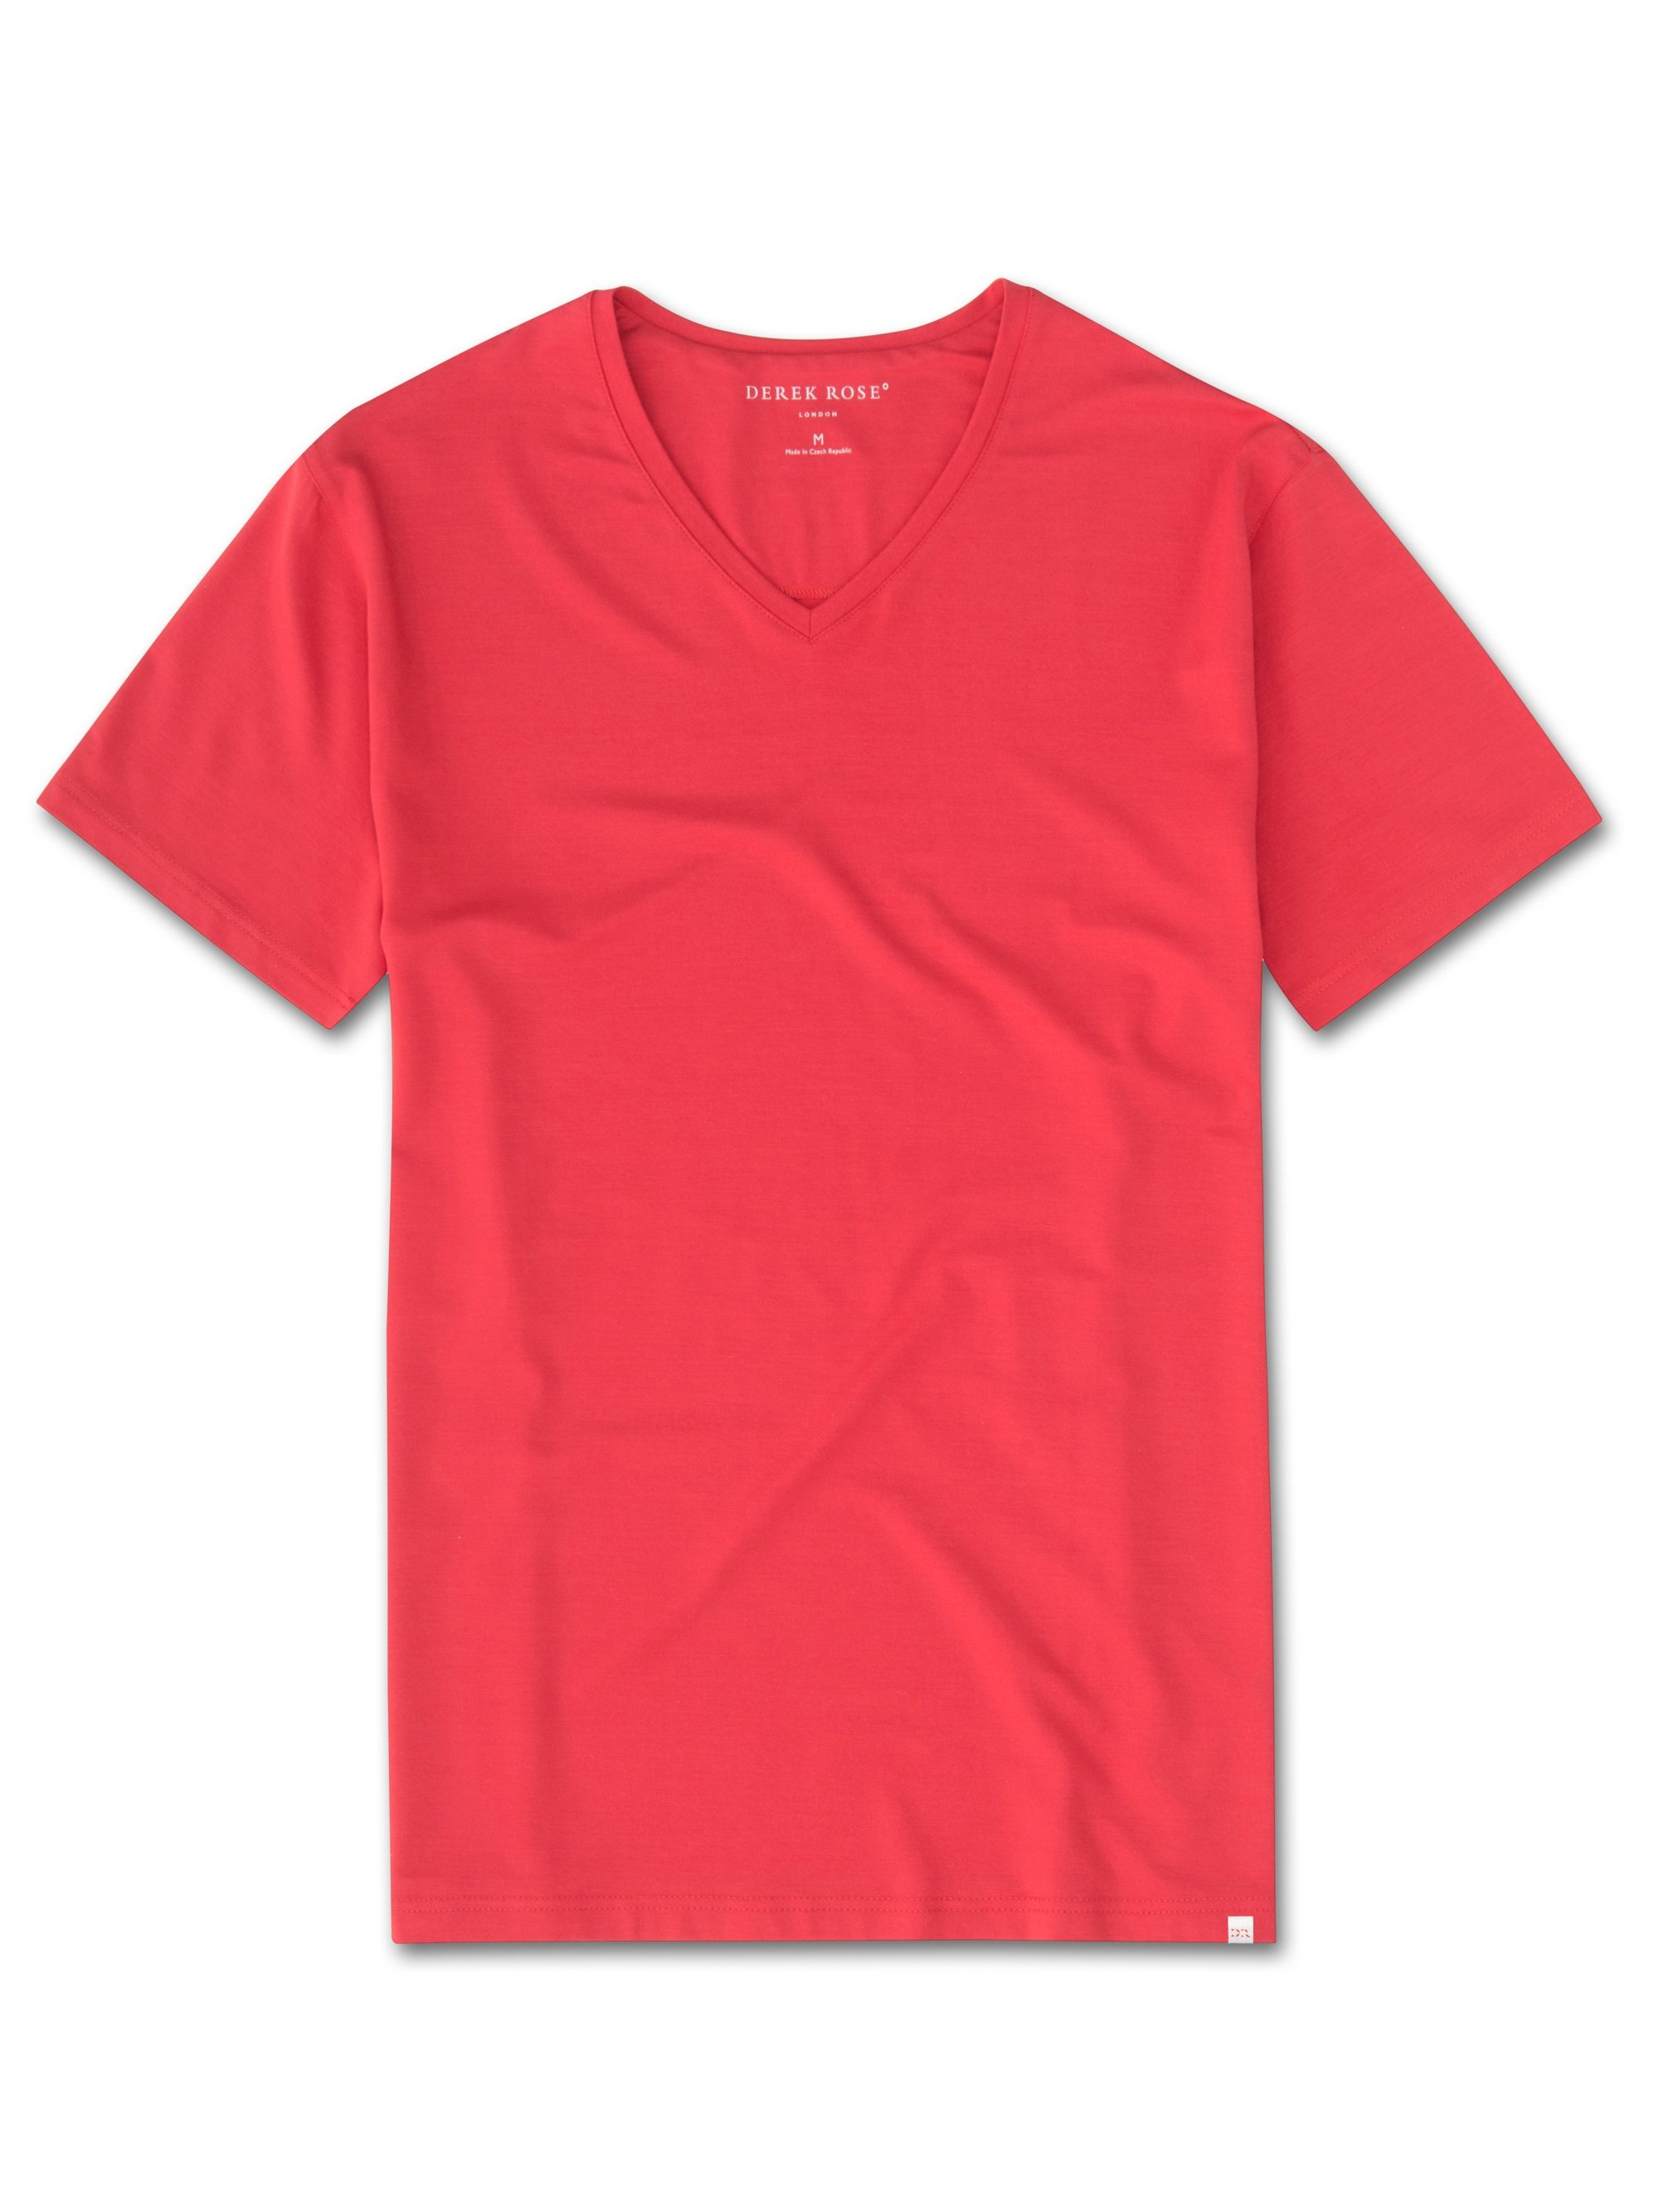 Men's Short Sleeve V-Neck T-Shirt Basel 6 Micro Modal Stretch Red